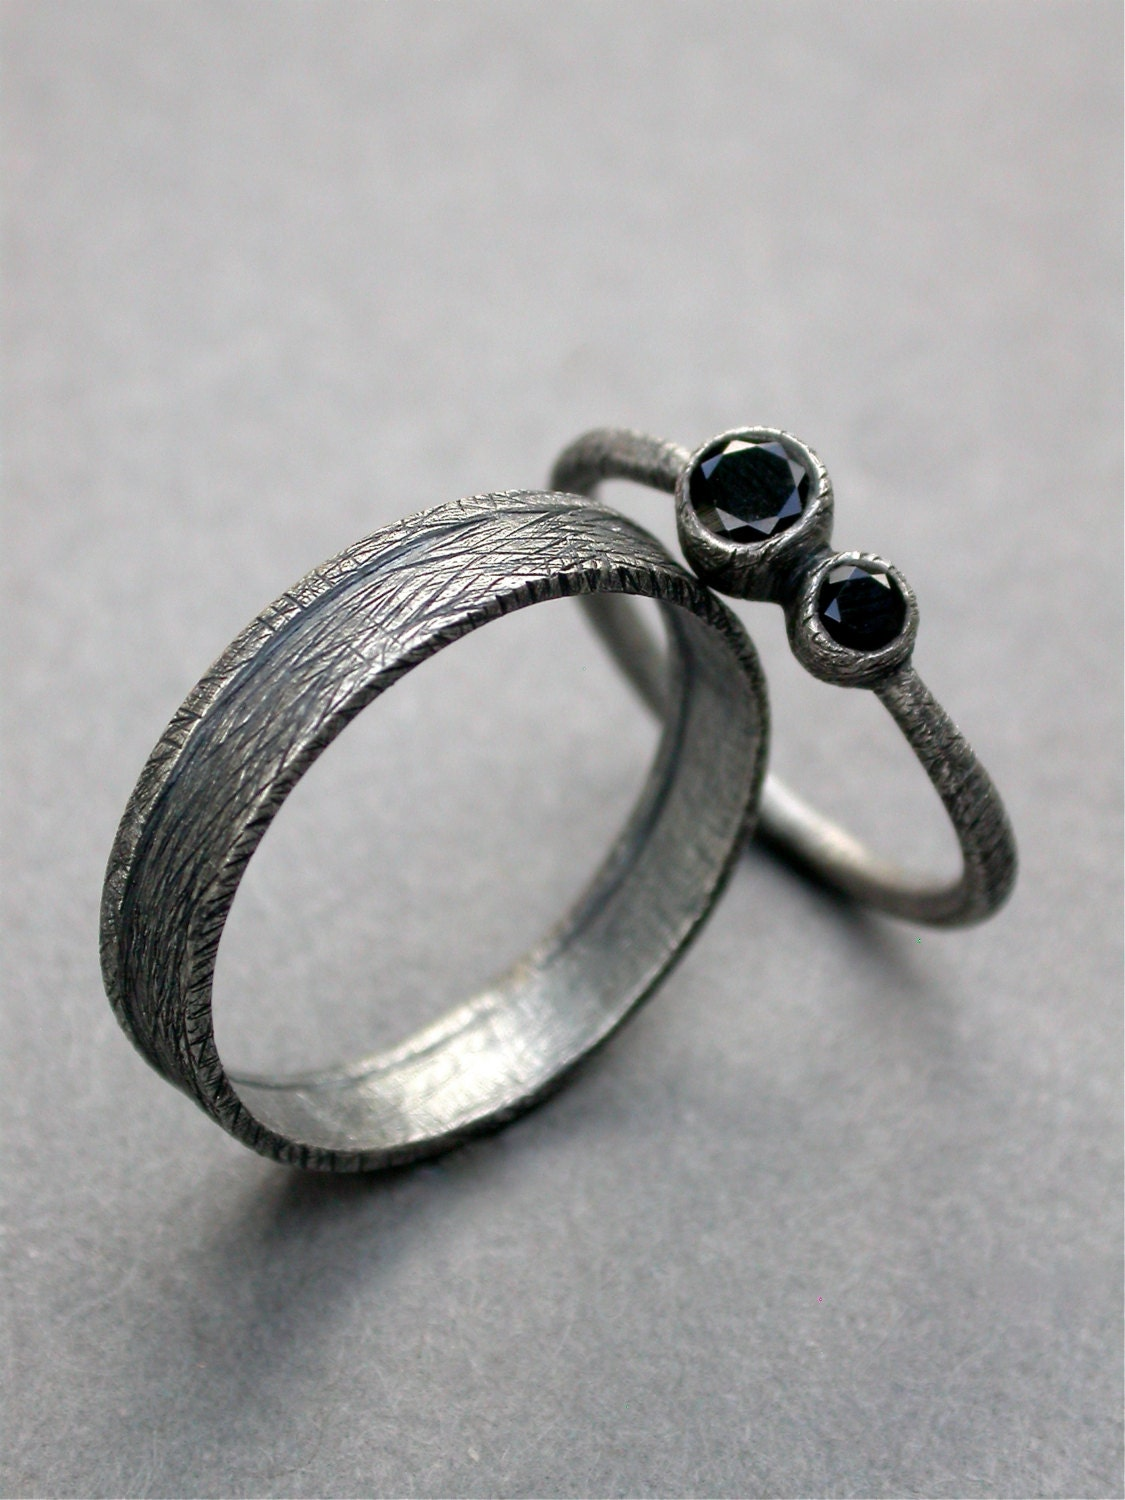 engagement ring rings diamond sculpture from hike organic jewelry nature news cg grisez and to